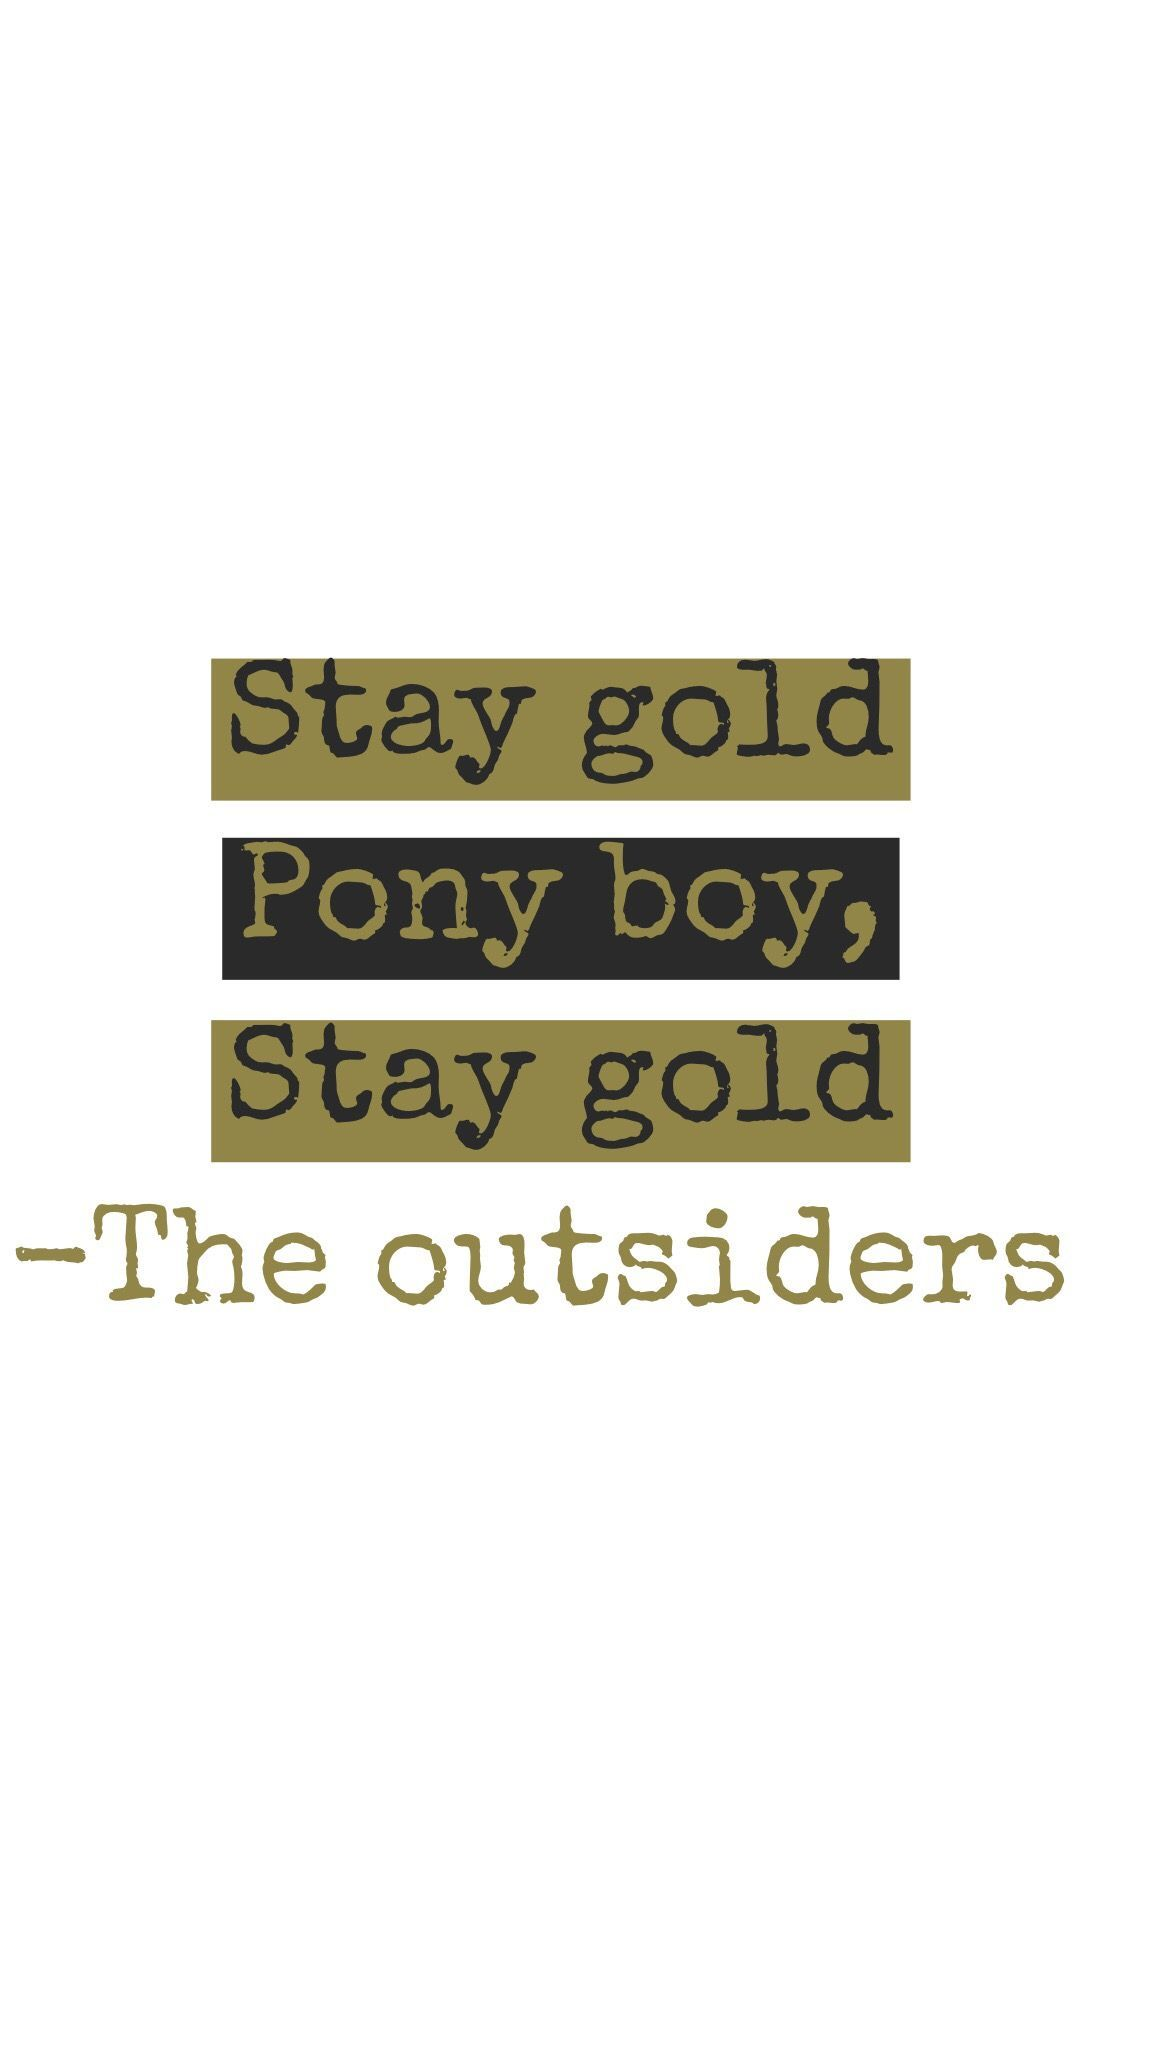 Stay Gold Wallpapers Top Free Stay Gold Backgrounds Wallpaperaccess So what if johnny meant that he likes pony's hair a gold color, not just stay young? stay gold wallpapers top free stay